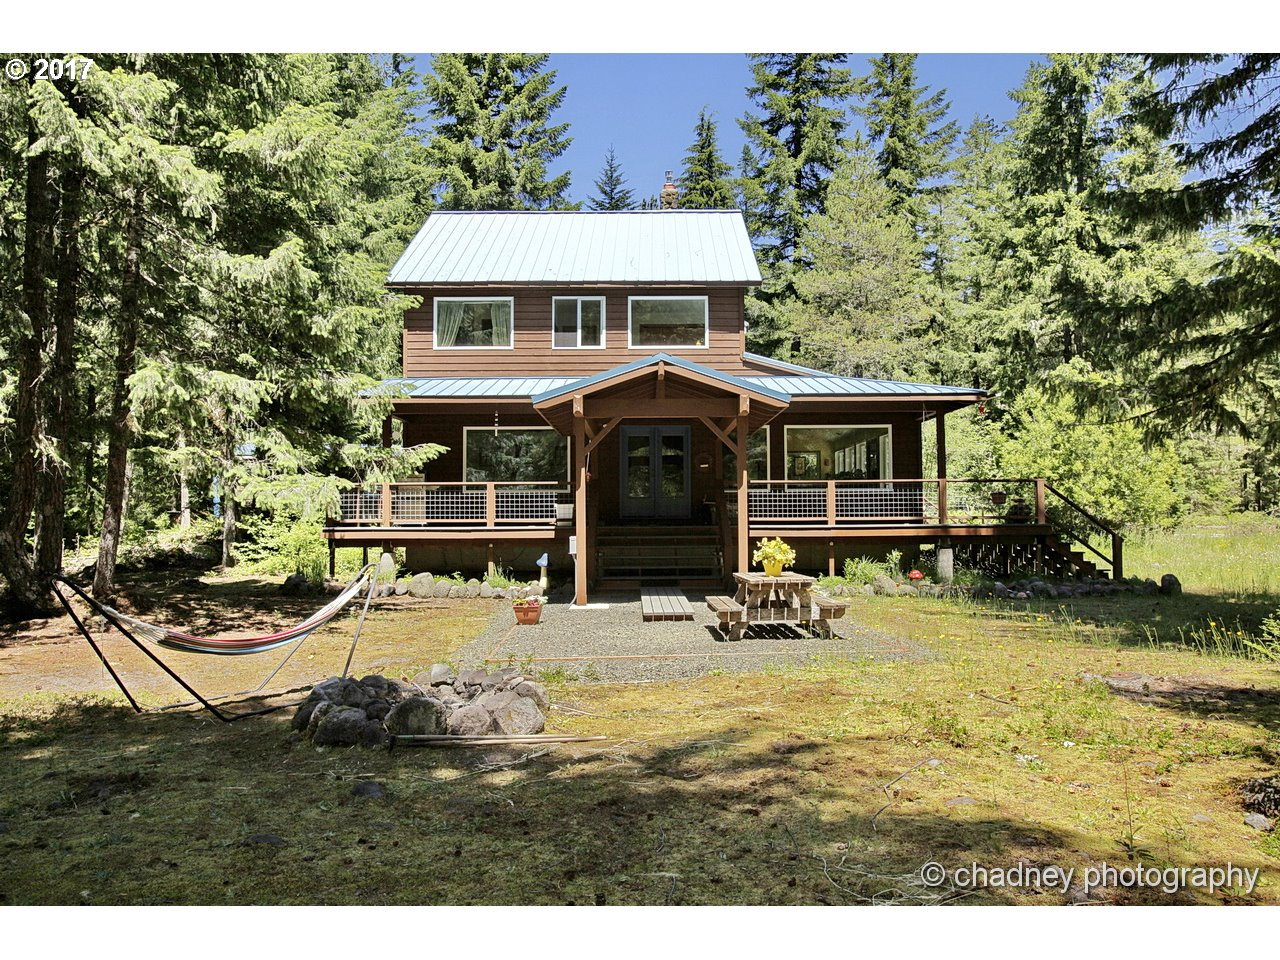 20166 E LOLO PASS RD, Rhododendron, OR 97049